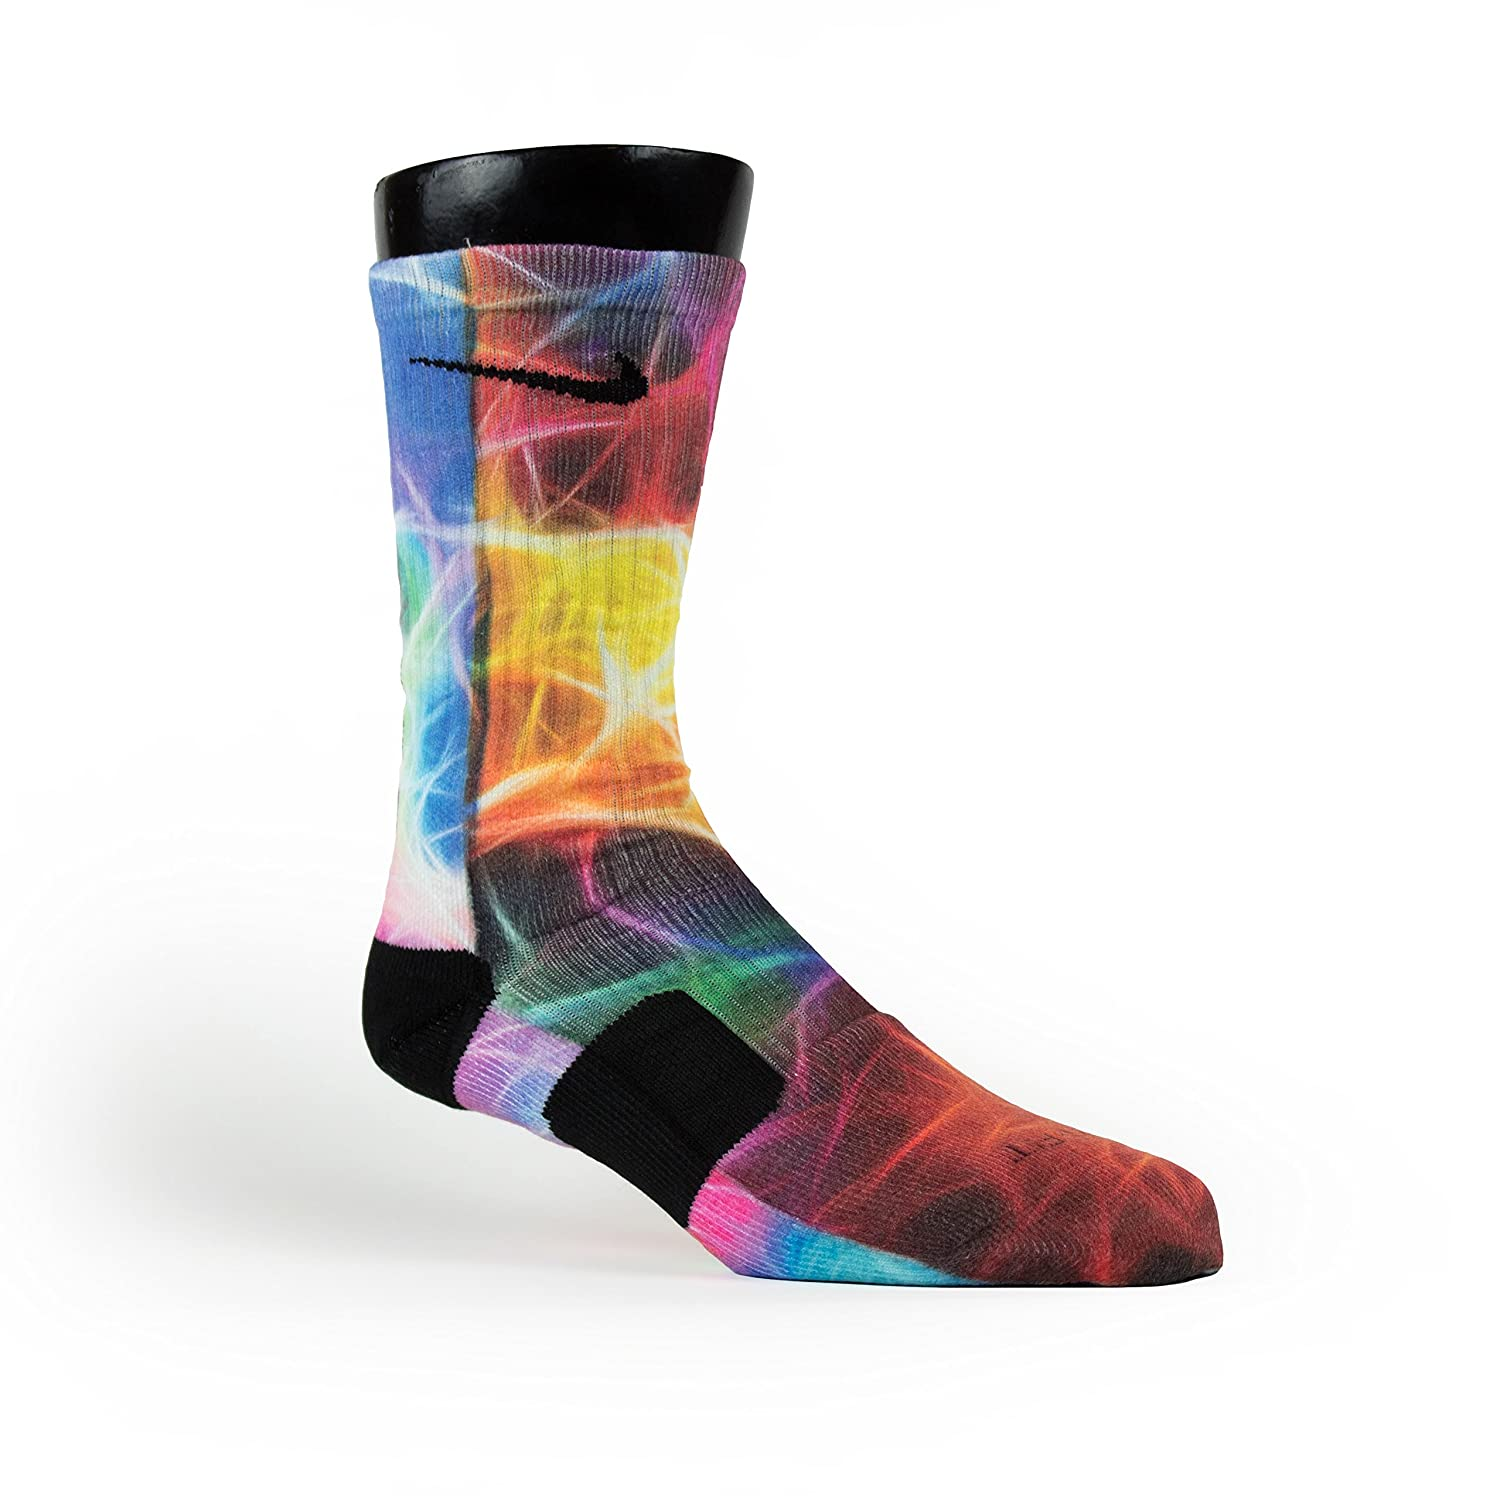 design nike socks